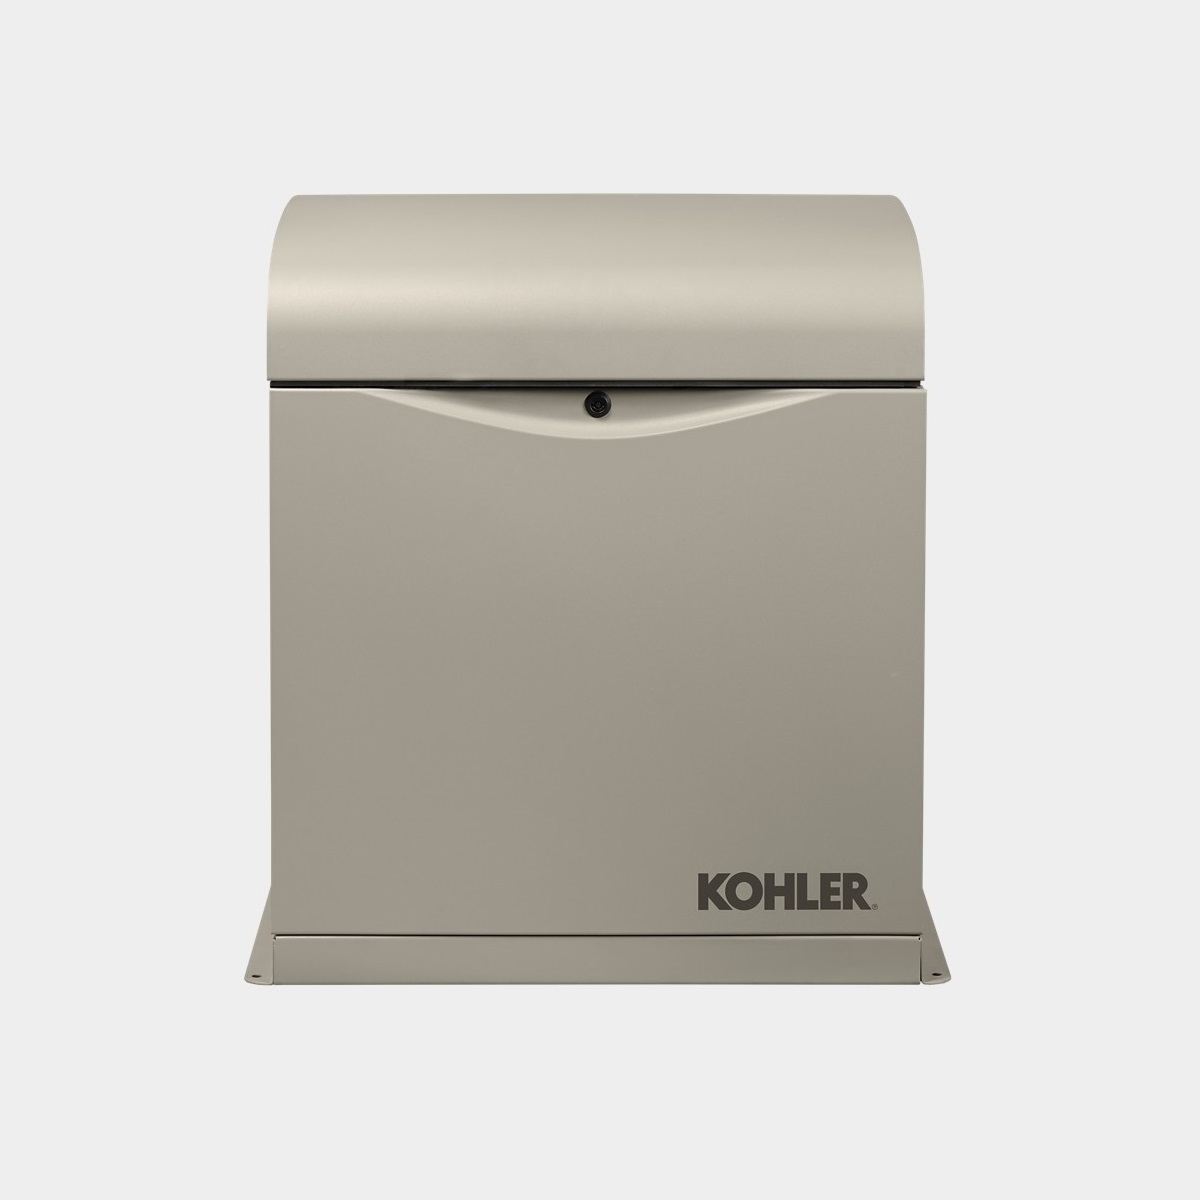 Kohler 8RESV 8 kW Generator - Single Phase, Natural Gas|LPG, with OnCue Plus